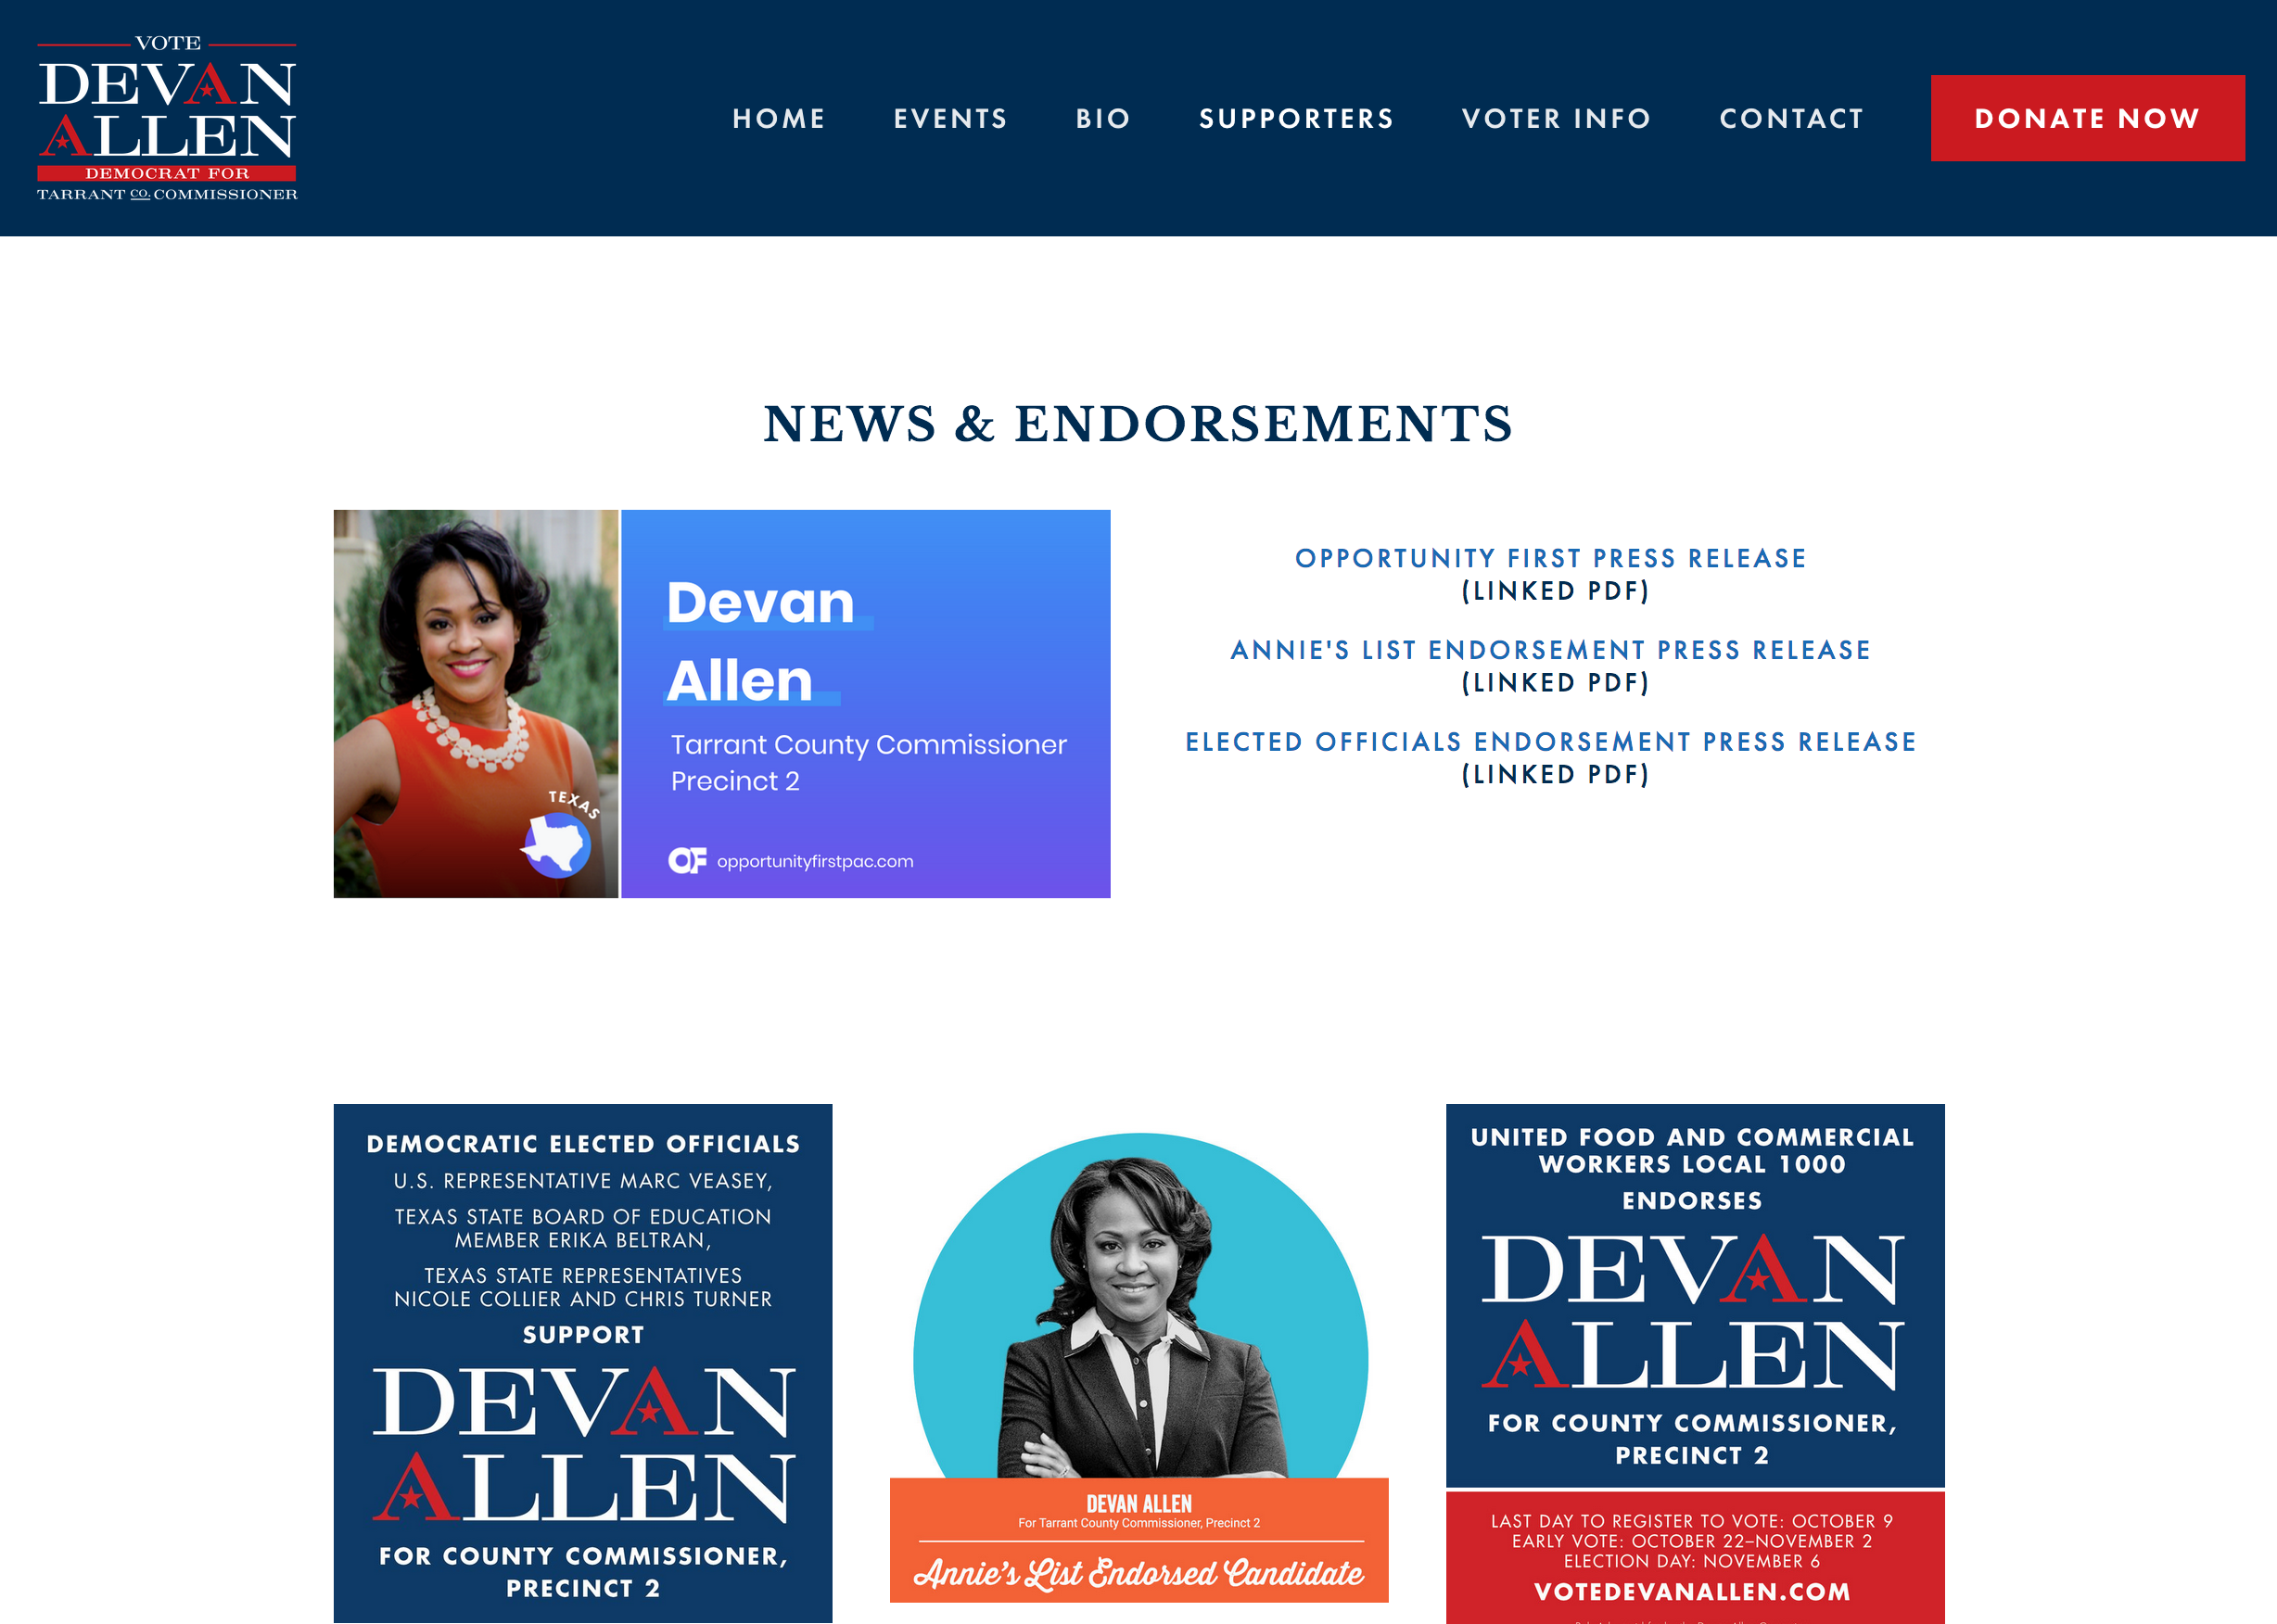 devanallen-campaign-website-greenapplelane.png